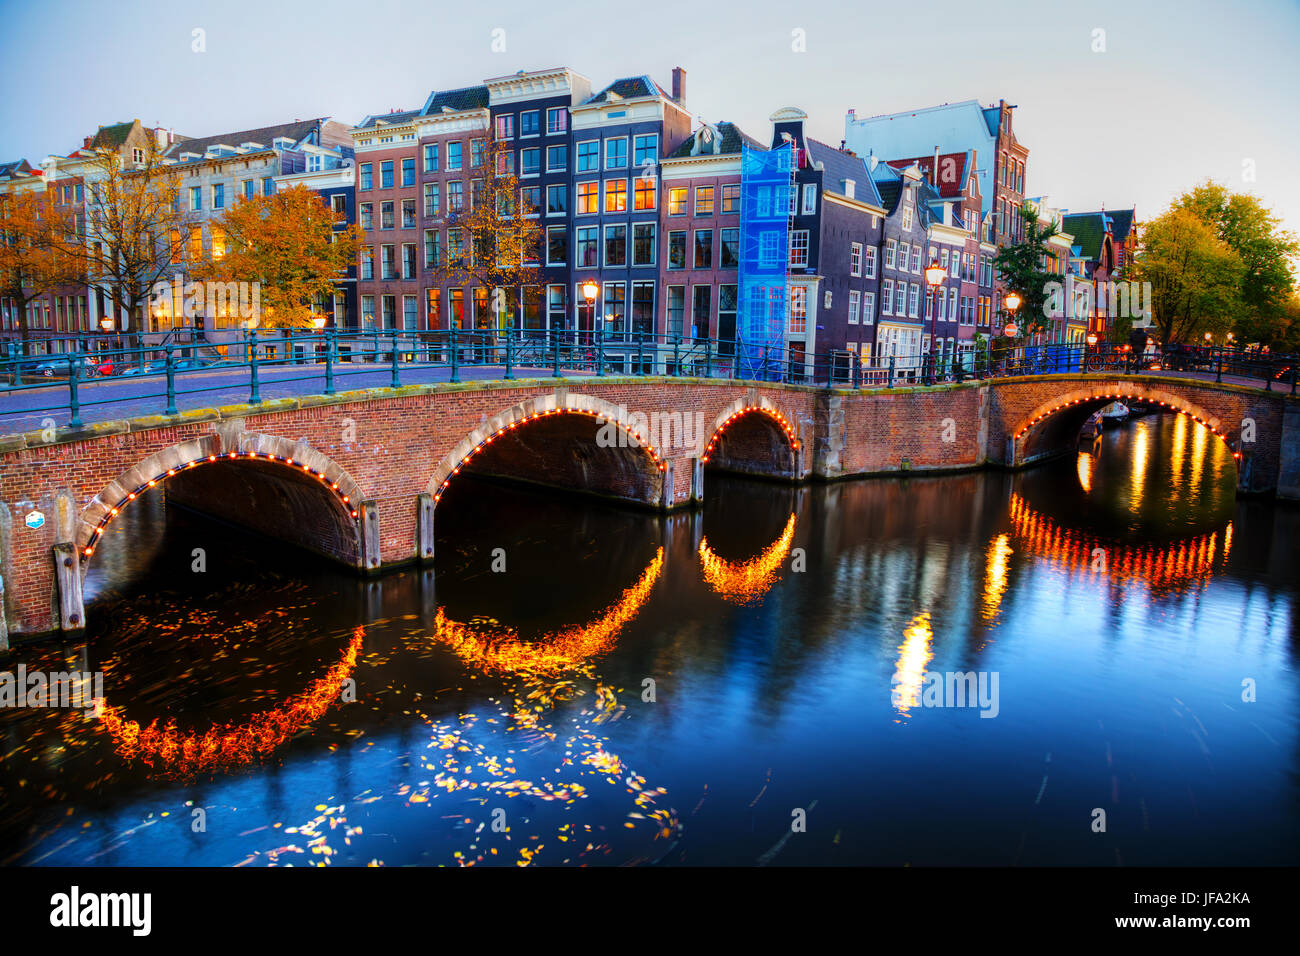 Amsterdam city view with canals and bridges - Stock Image